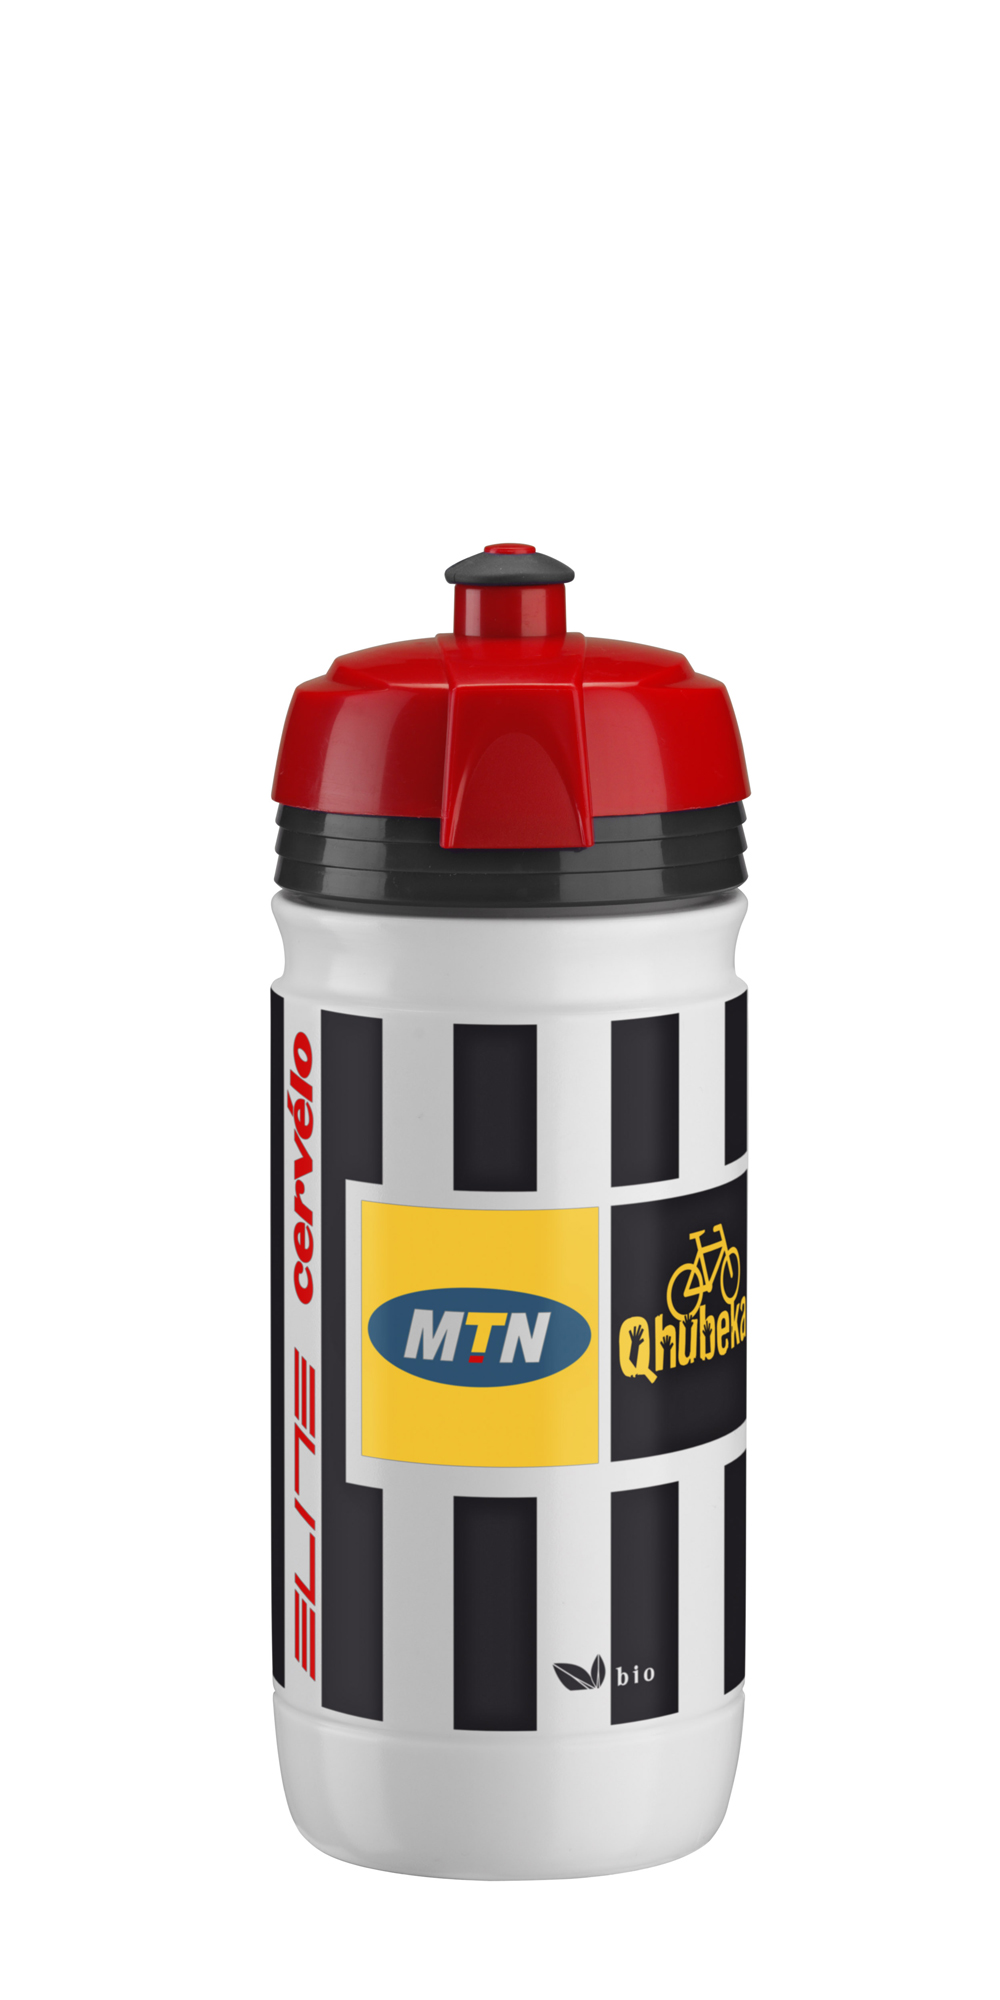 ELITE TEAM láhev CORSA MTN QHUBECA 550ml